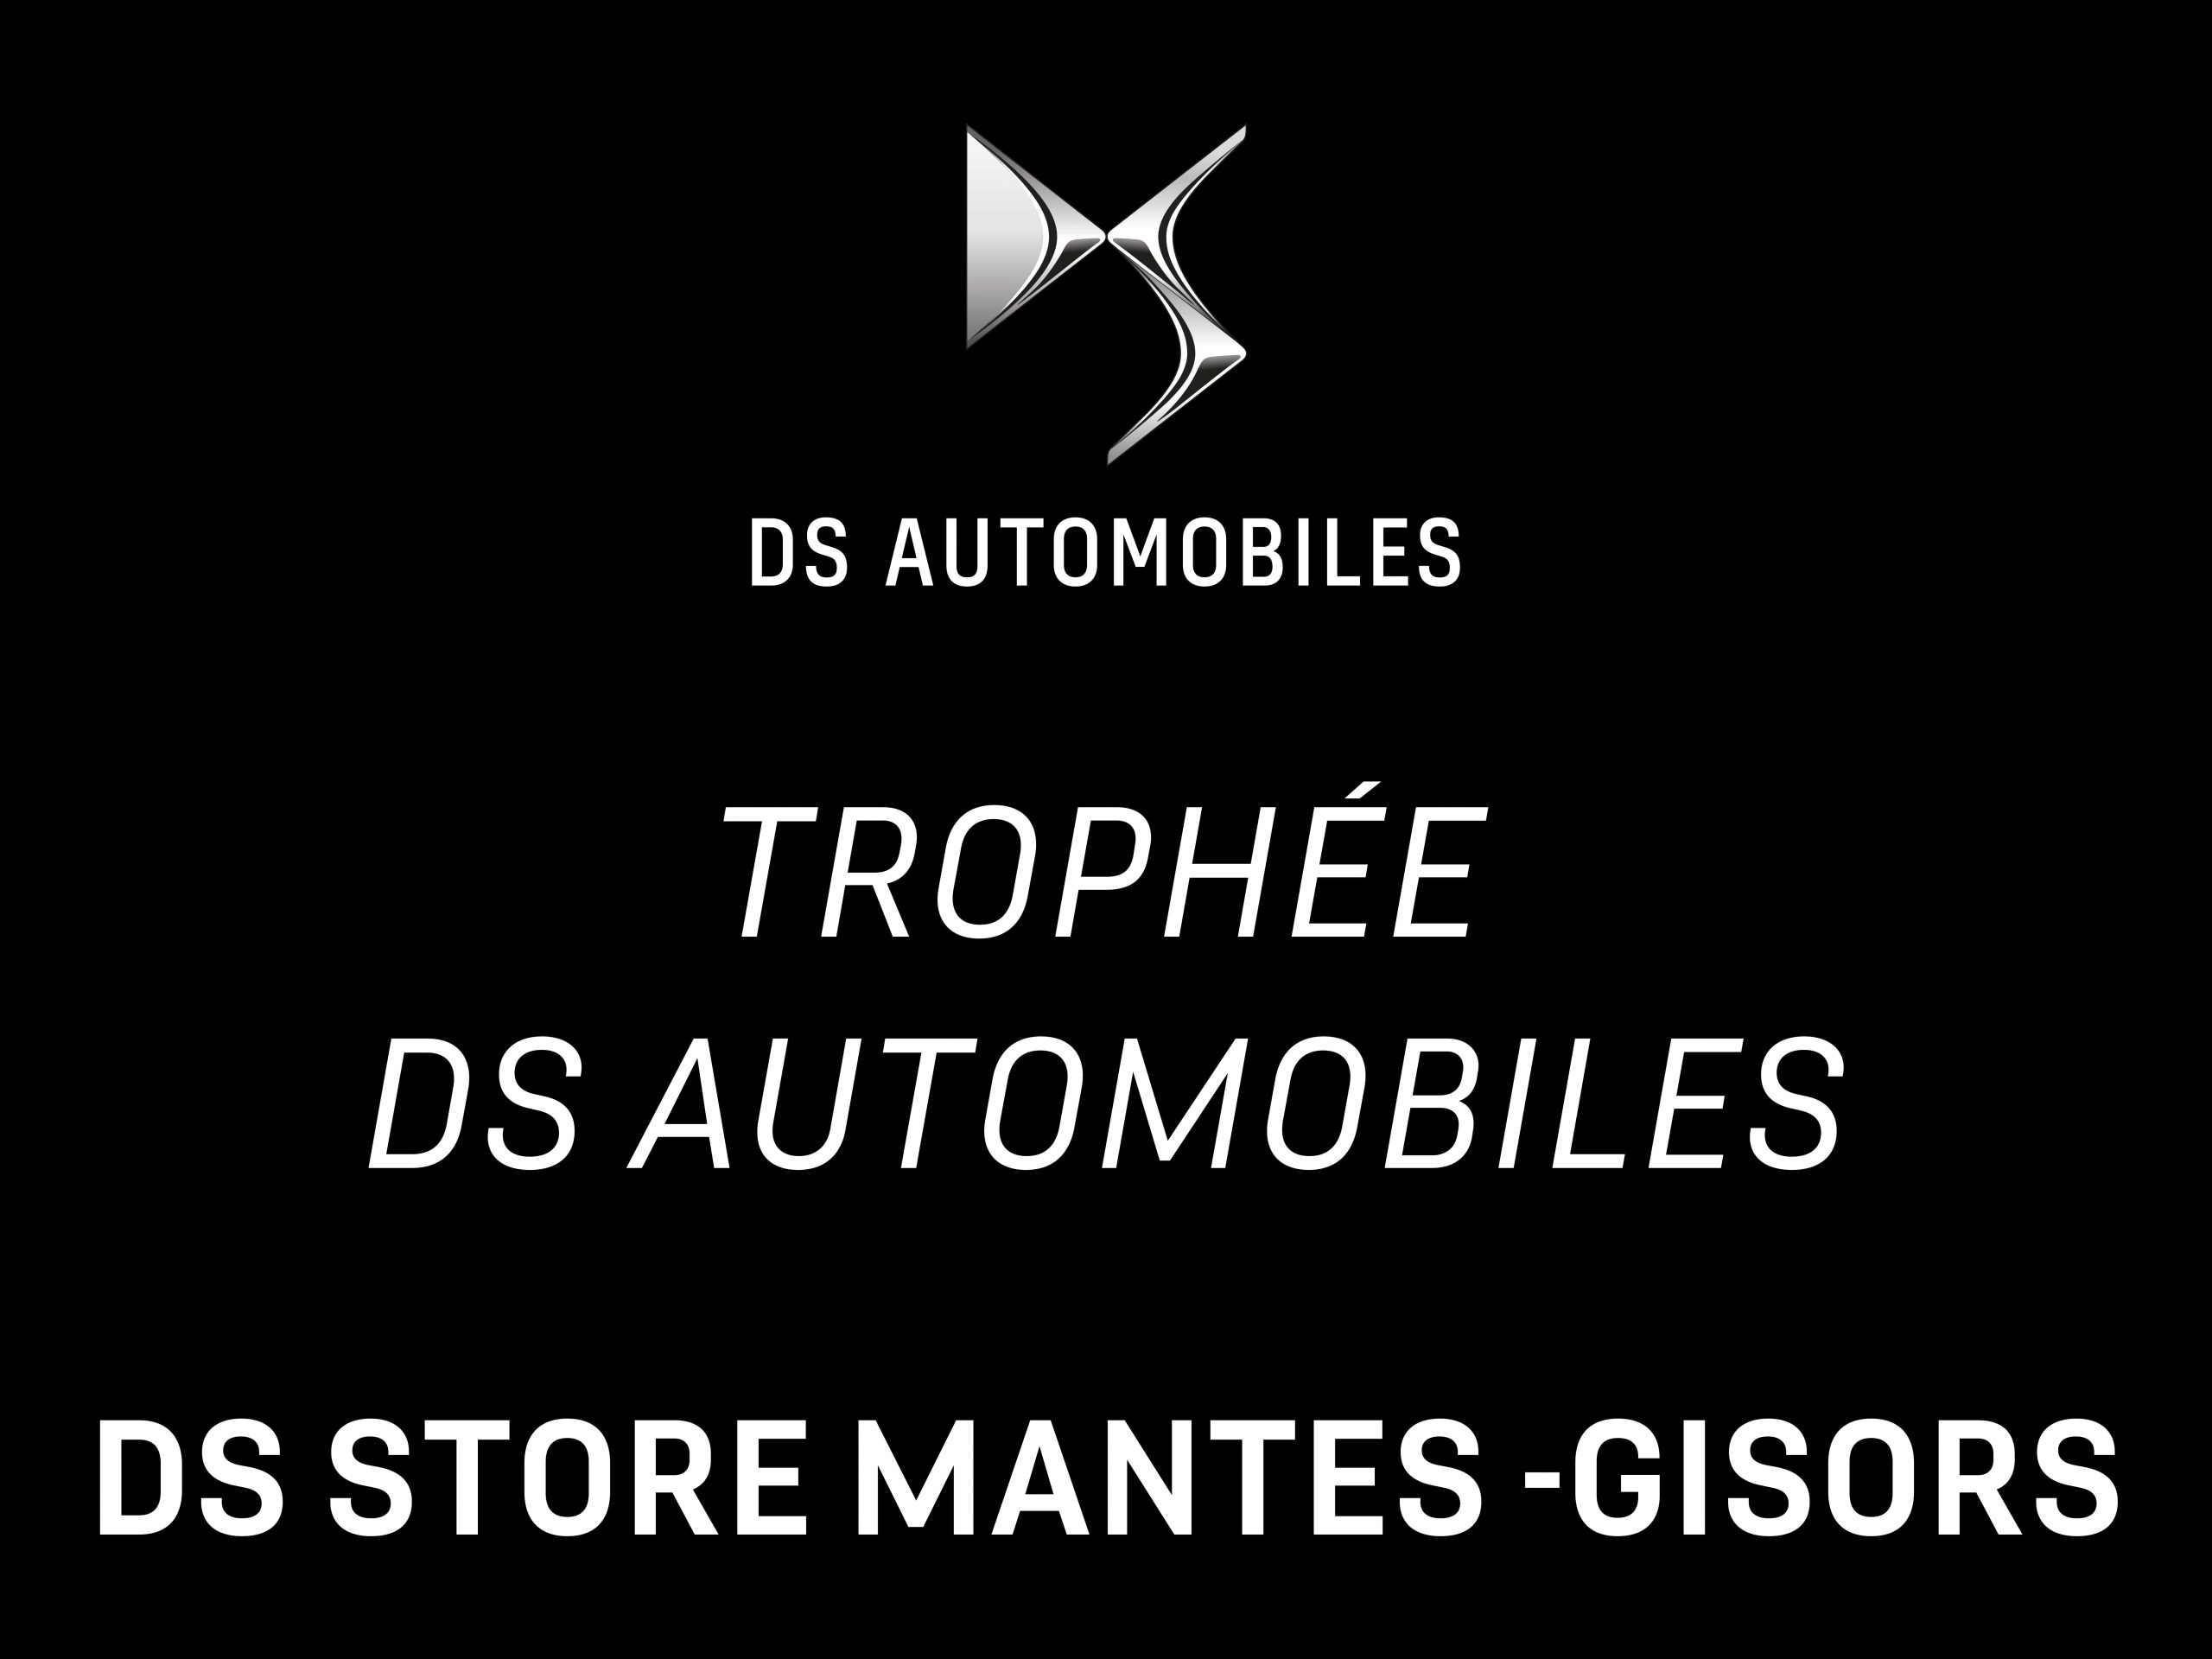 DS STORE MANTES - GISORS